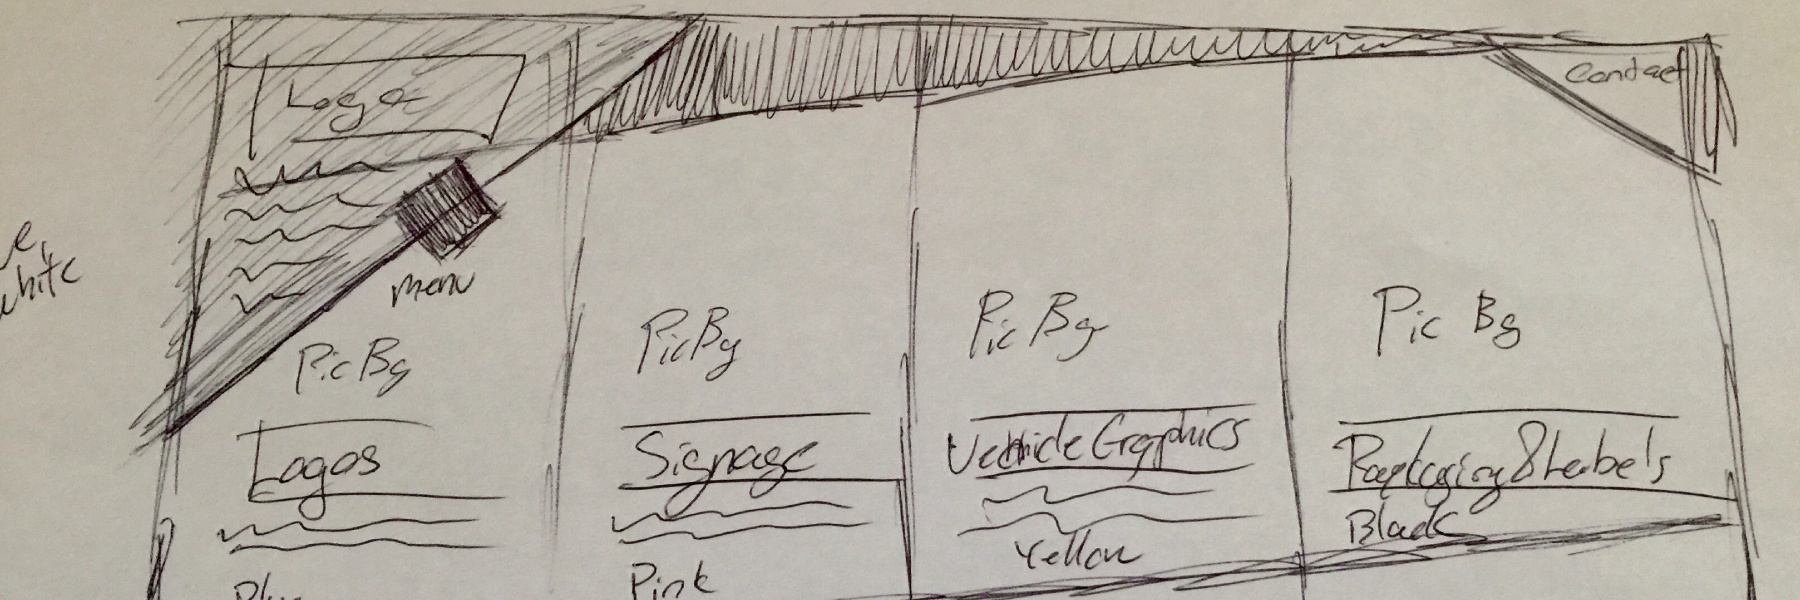 Picture showing the wireframe sketches we did for Visual Concepts website